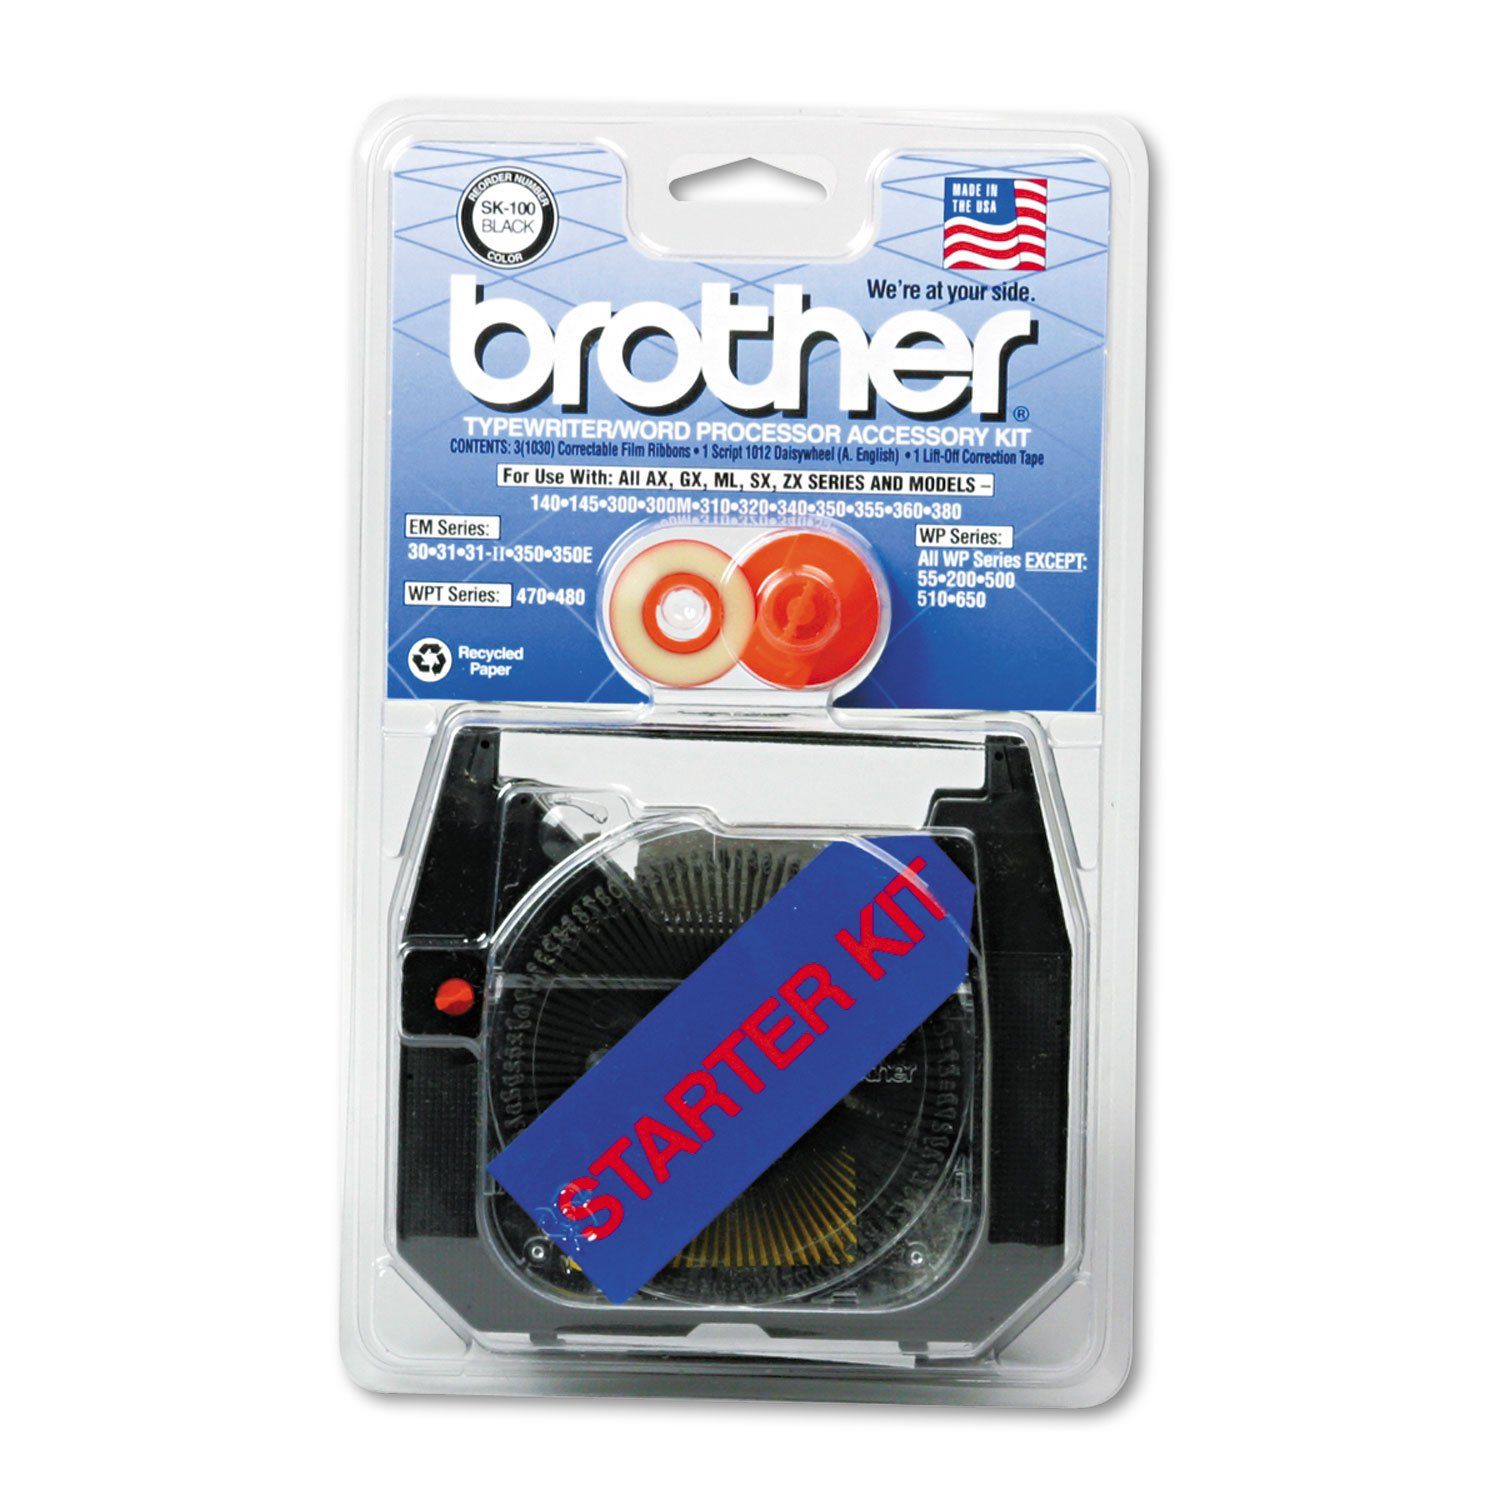 Brother SK100 Starter Kit for Brother AX, GX, SX, Most WP and Other Typewriters